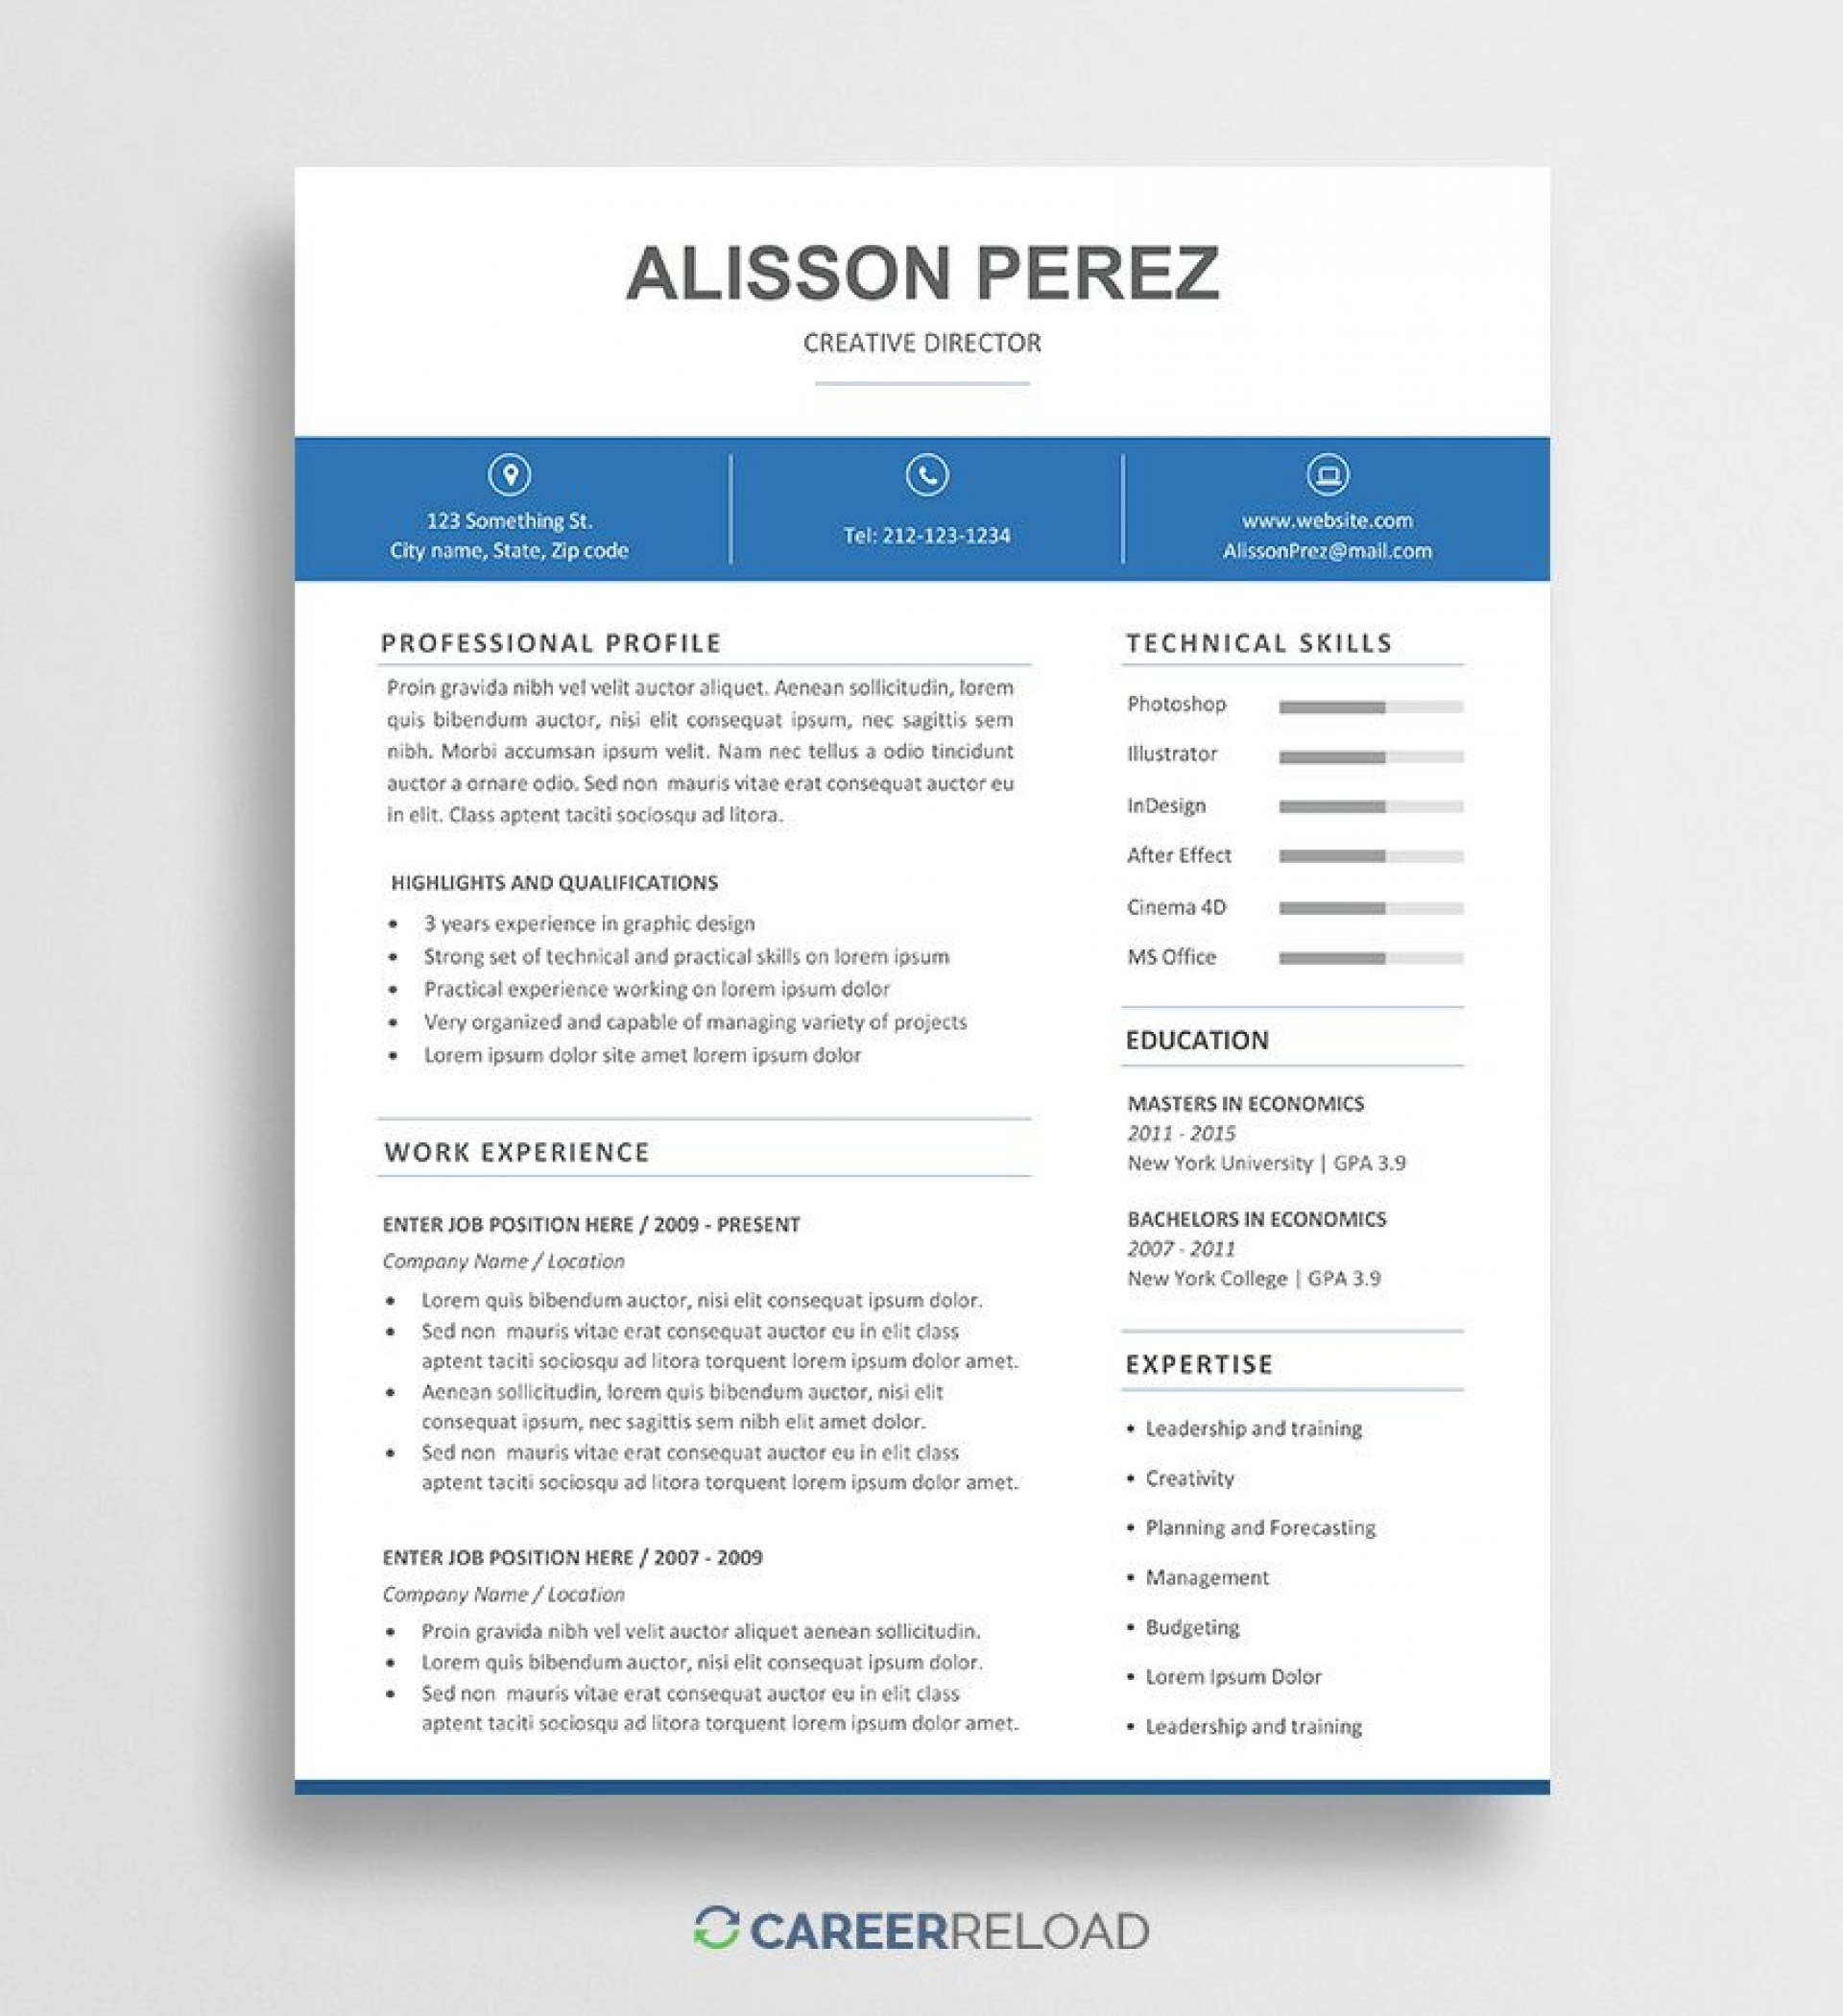 009 Fantastic Resume Template On Word Highest Clarity  Free Download Australia Microsoft Office 2007 Philippine1920